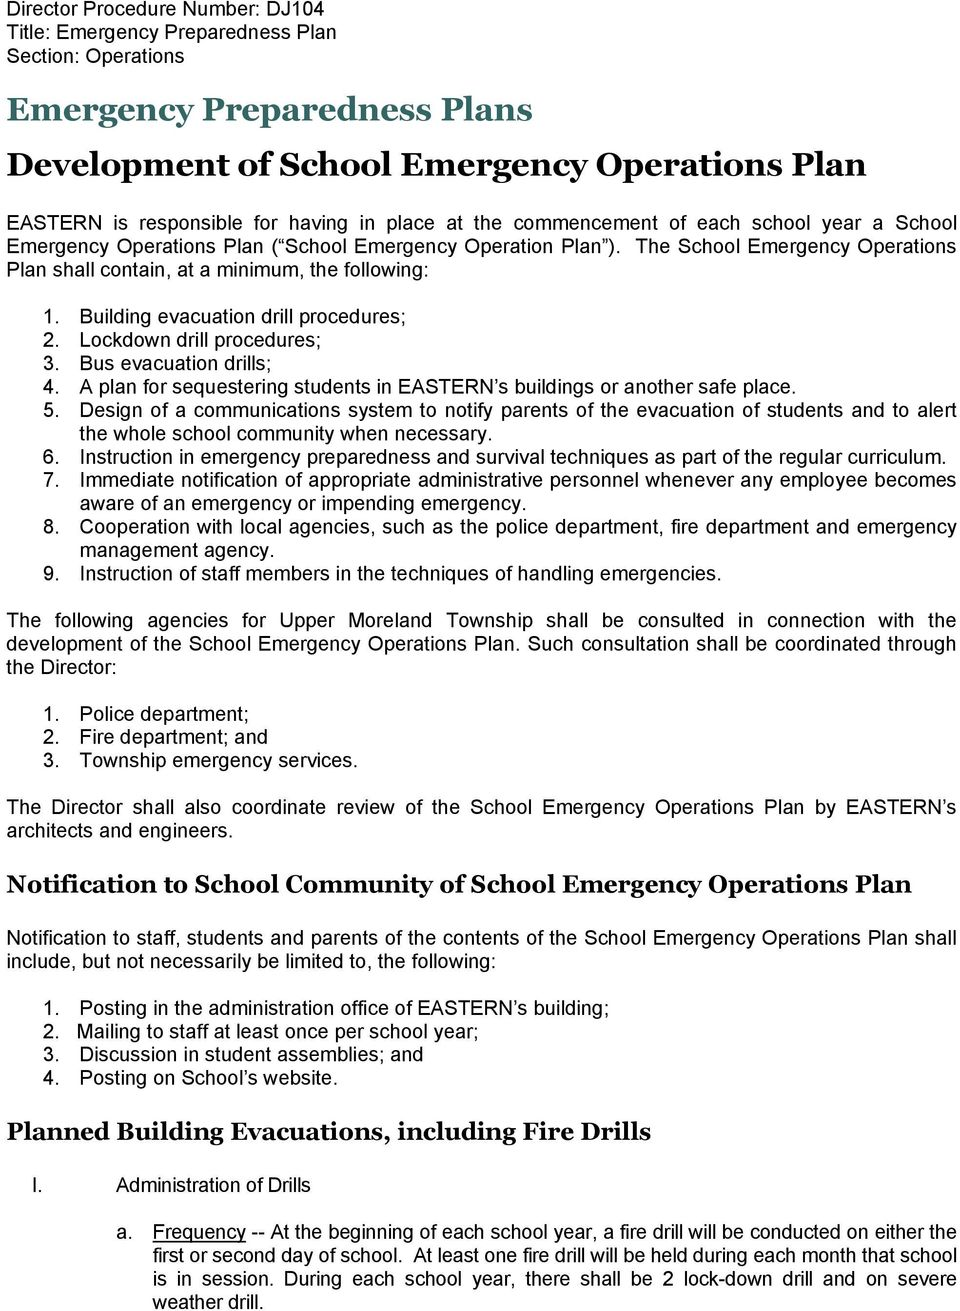 The School Emergency Operations Plan shall contain, at a minimum, the following: 1. Building evacuation drill procedures; 2. Lockdown drill procedures; 3. Bus evacuation drills; 4.